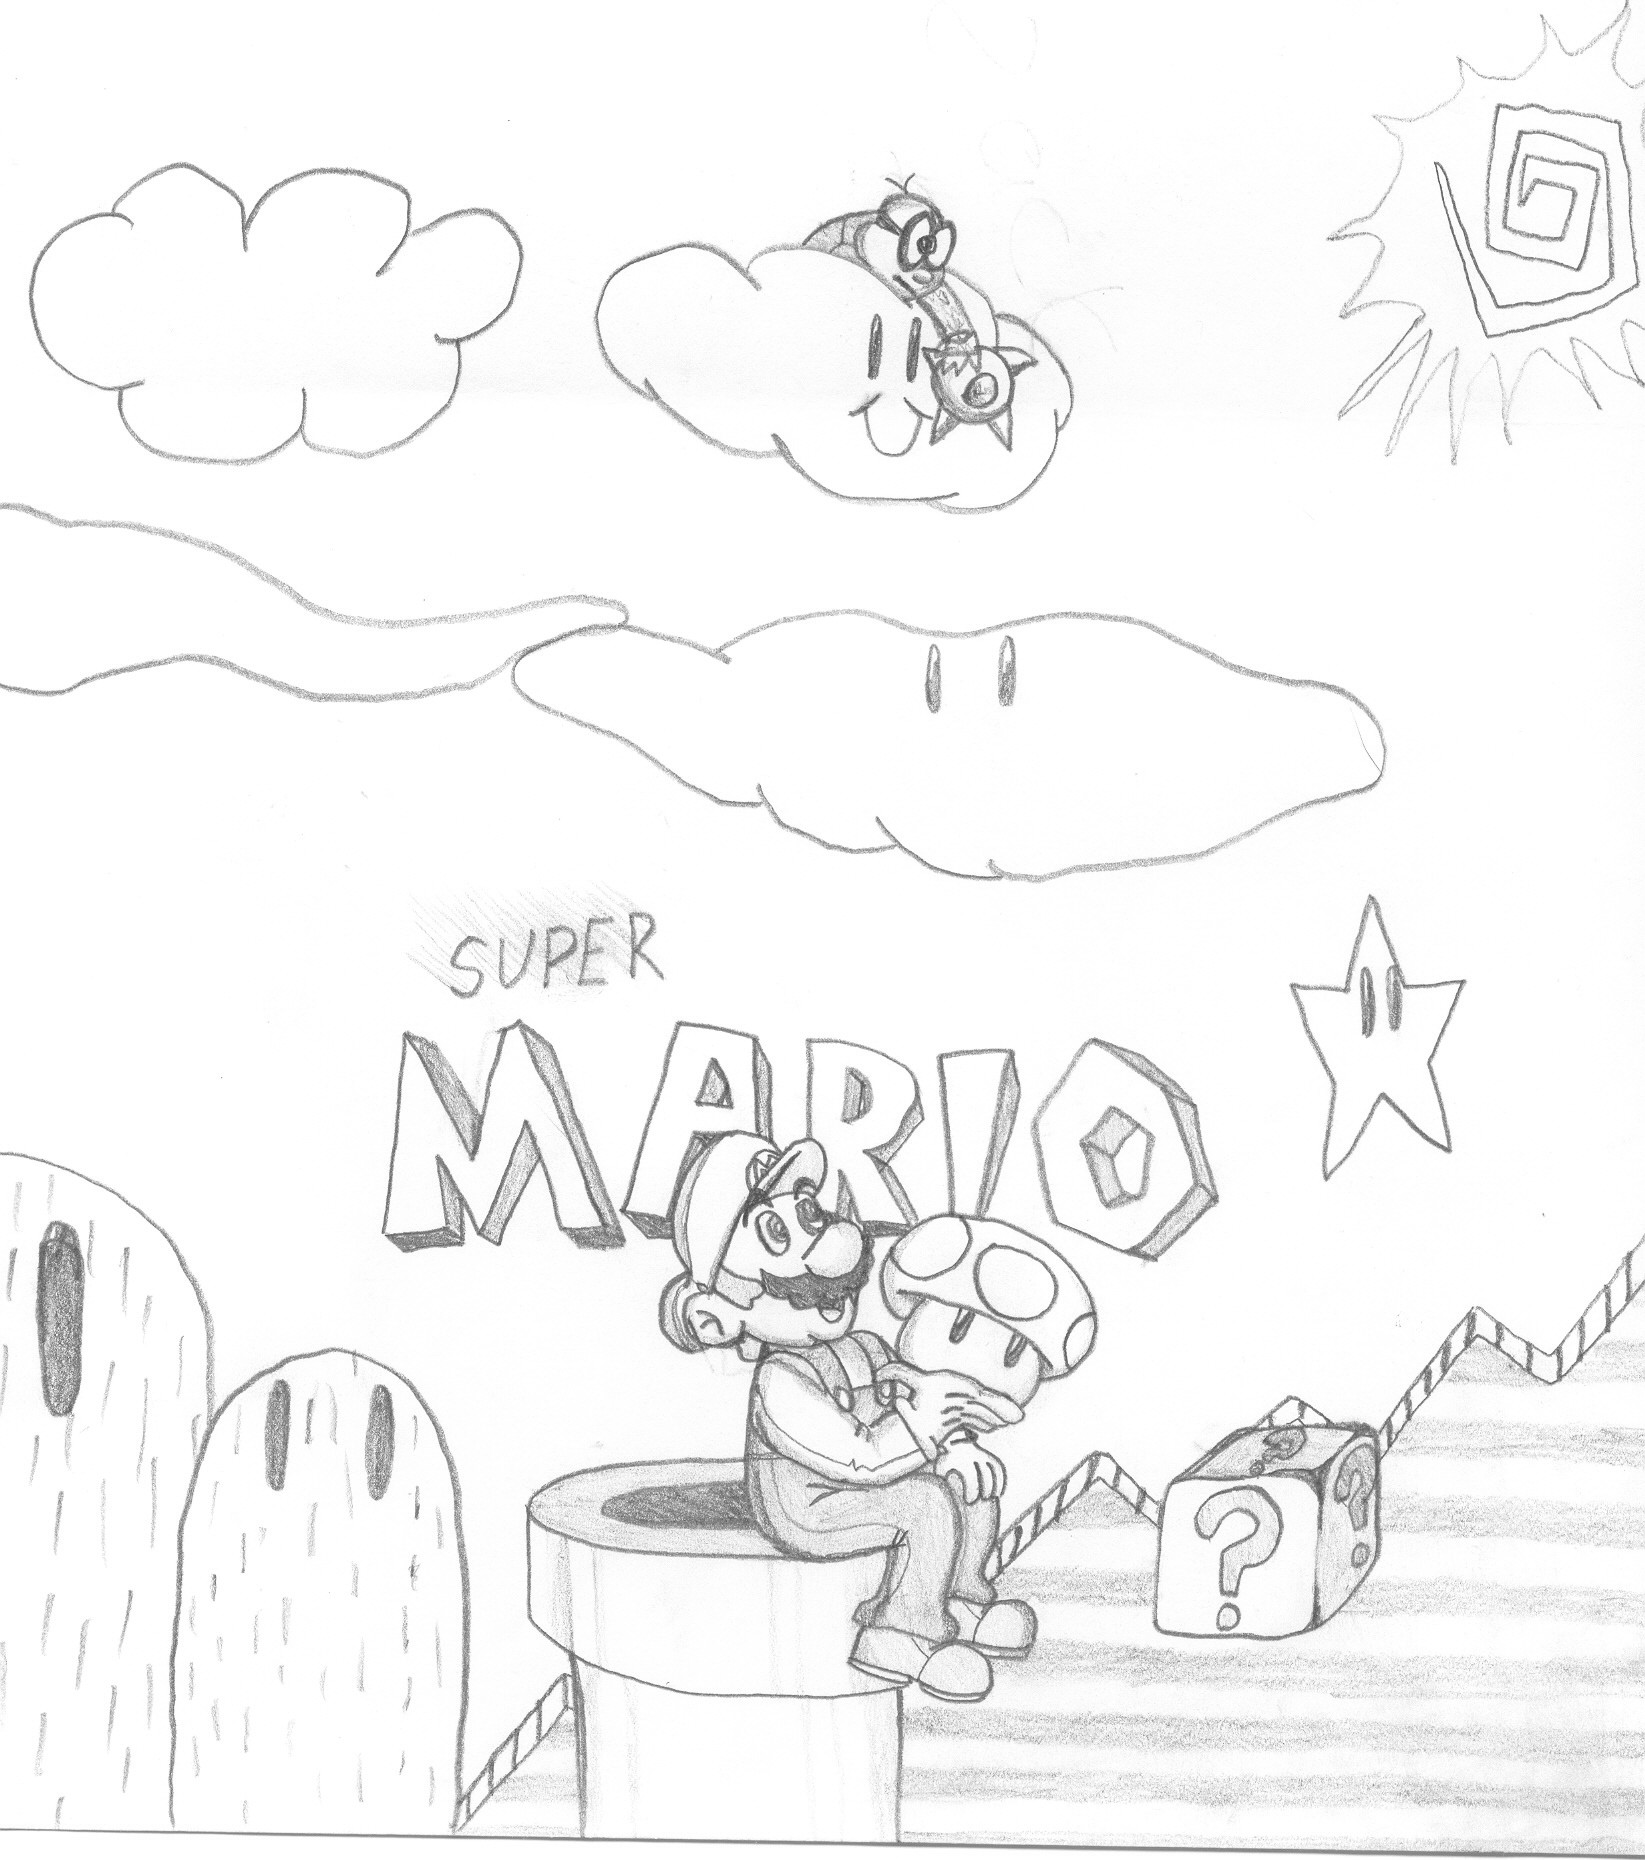 Super Mario (VERY OLD)